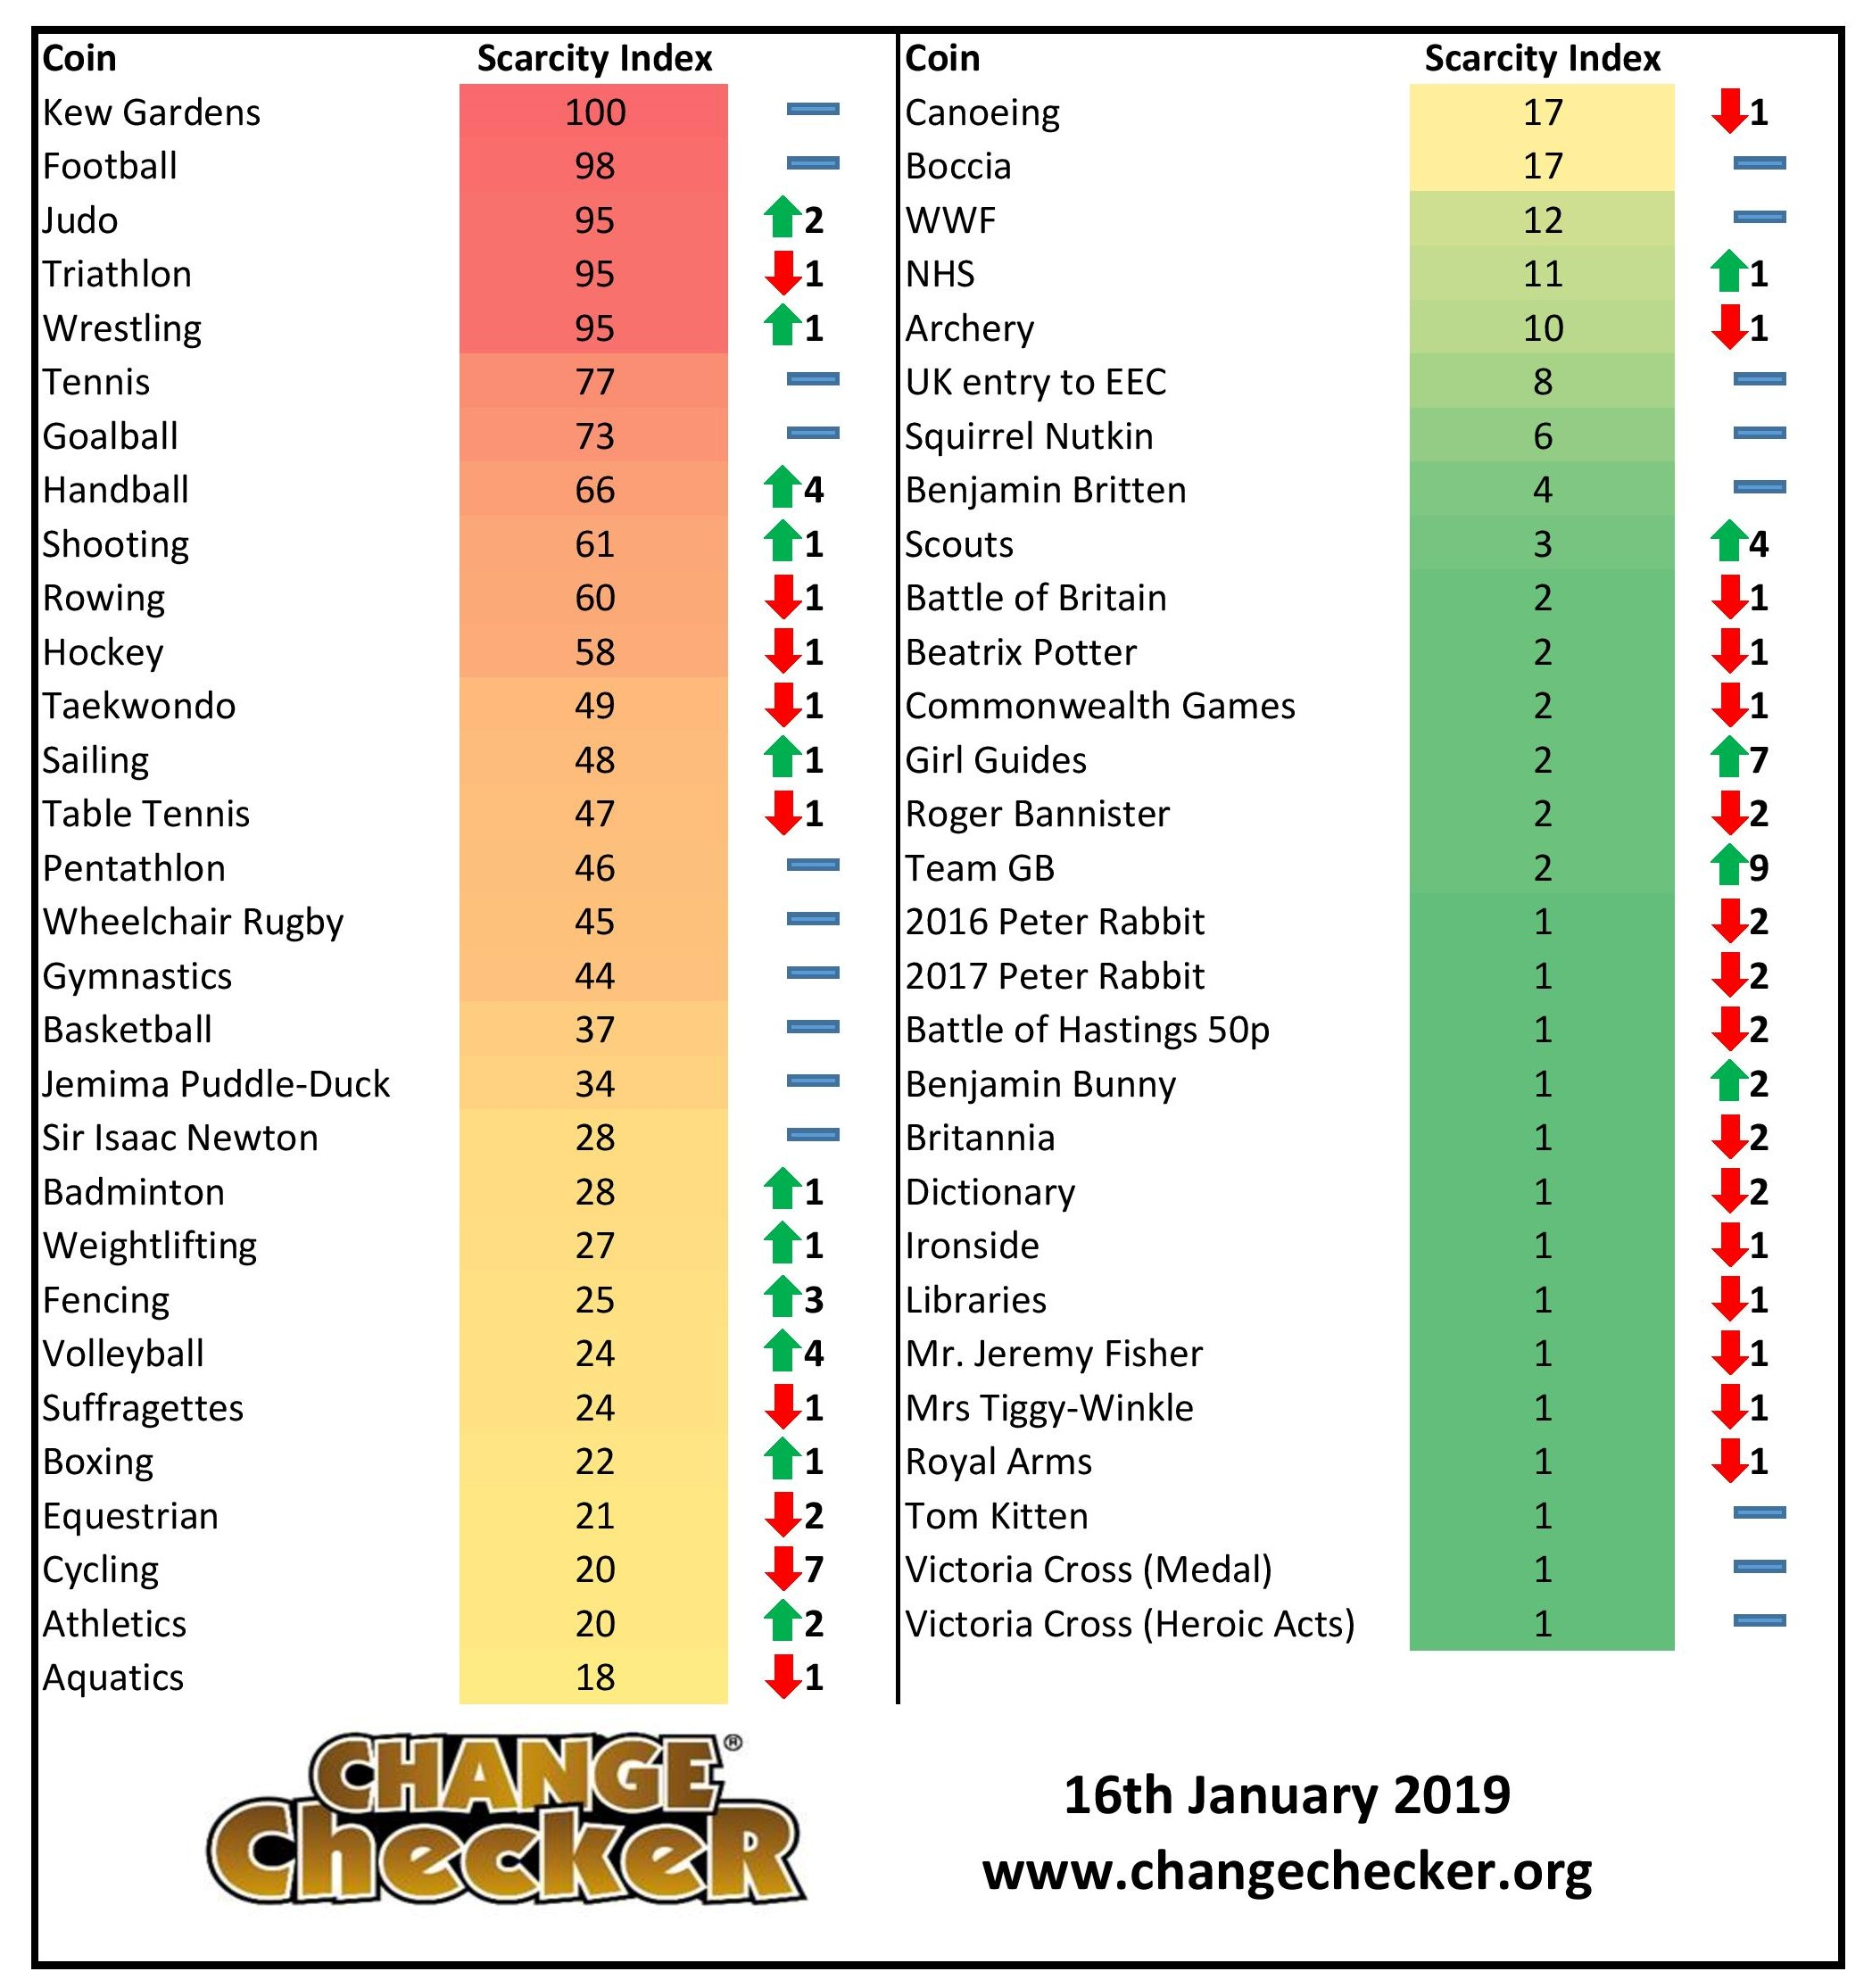 Your January 2019 Scarcity Index update!